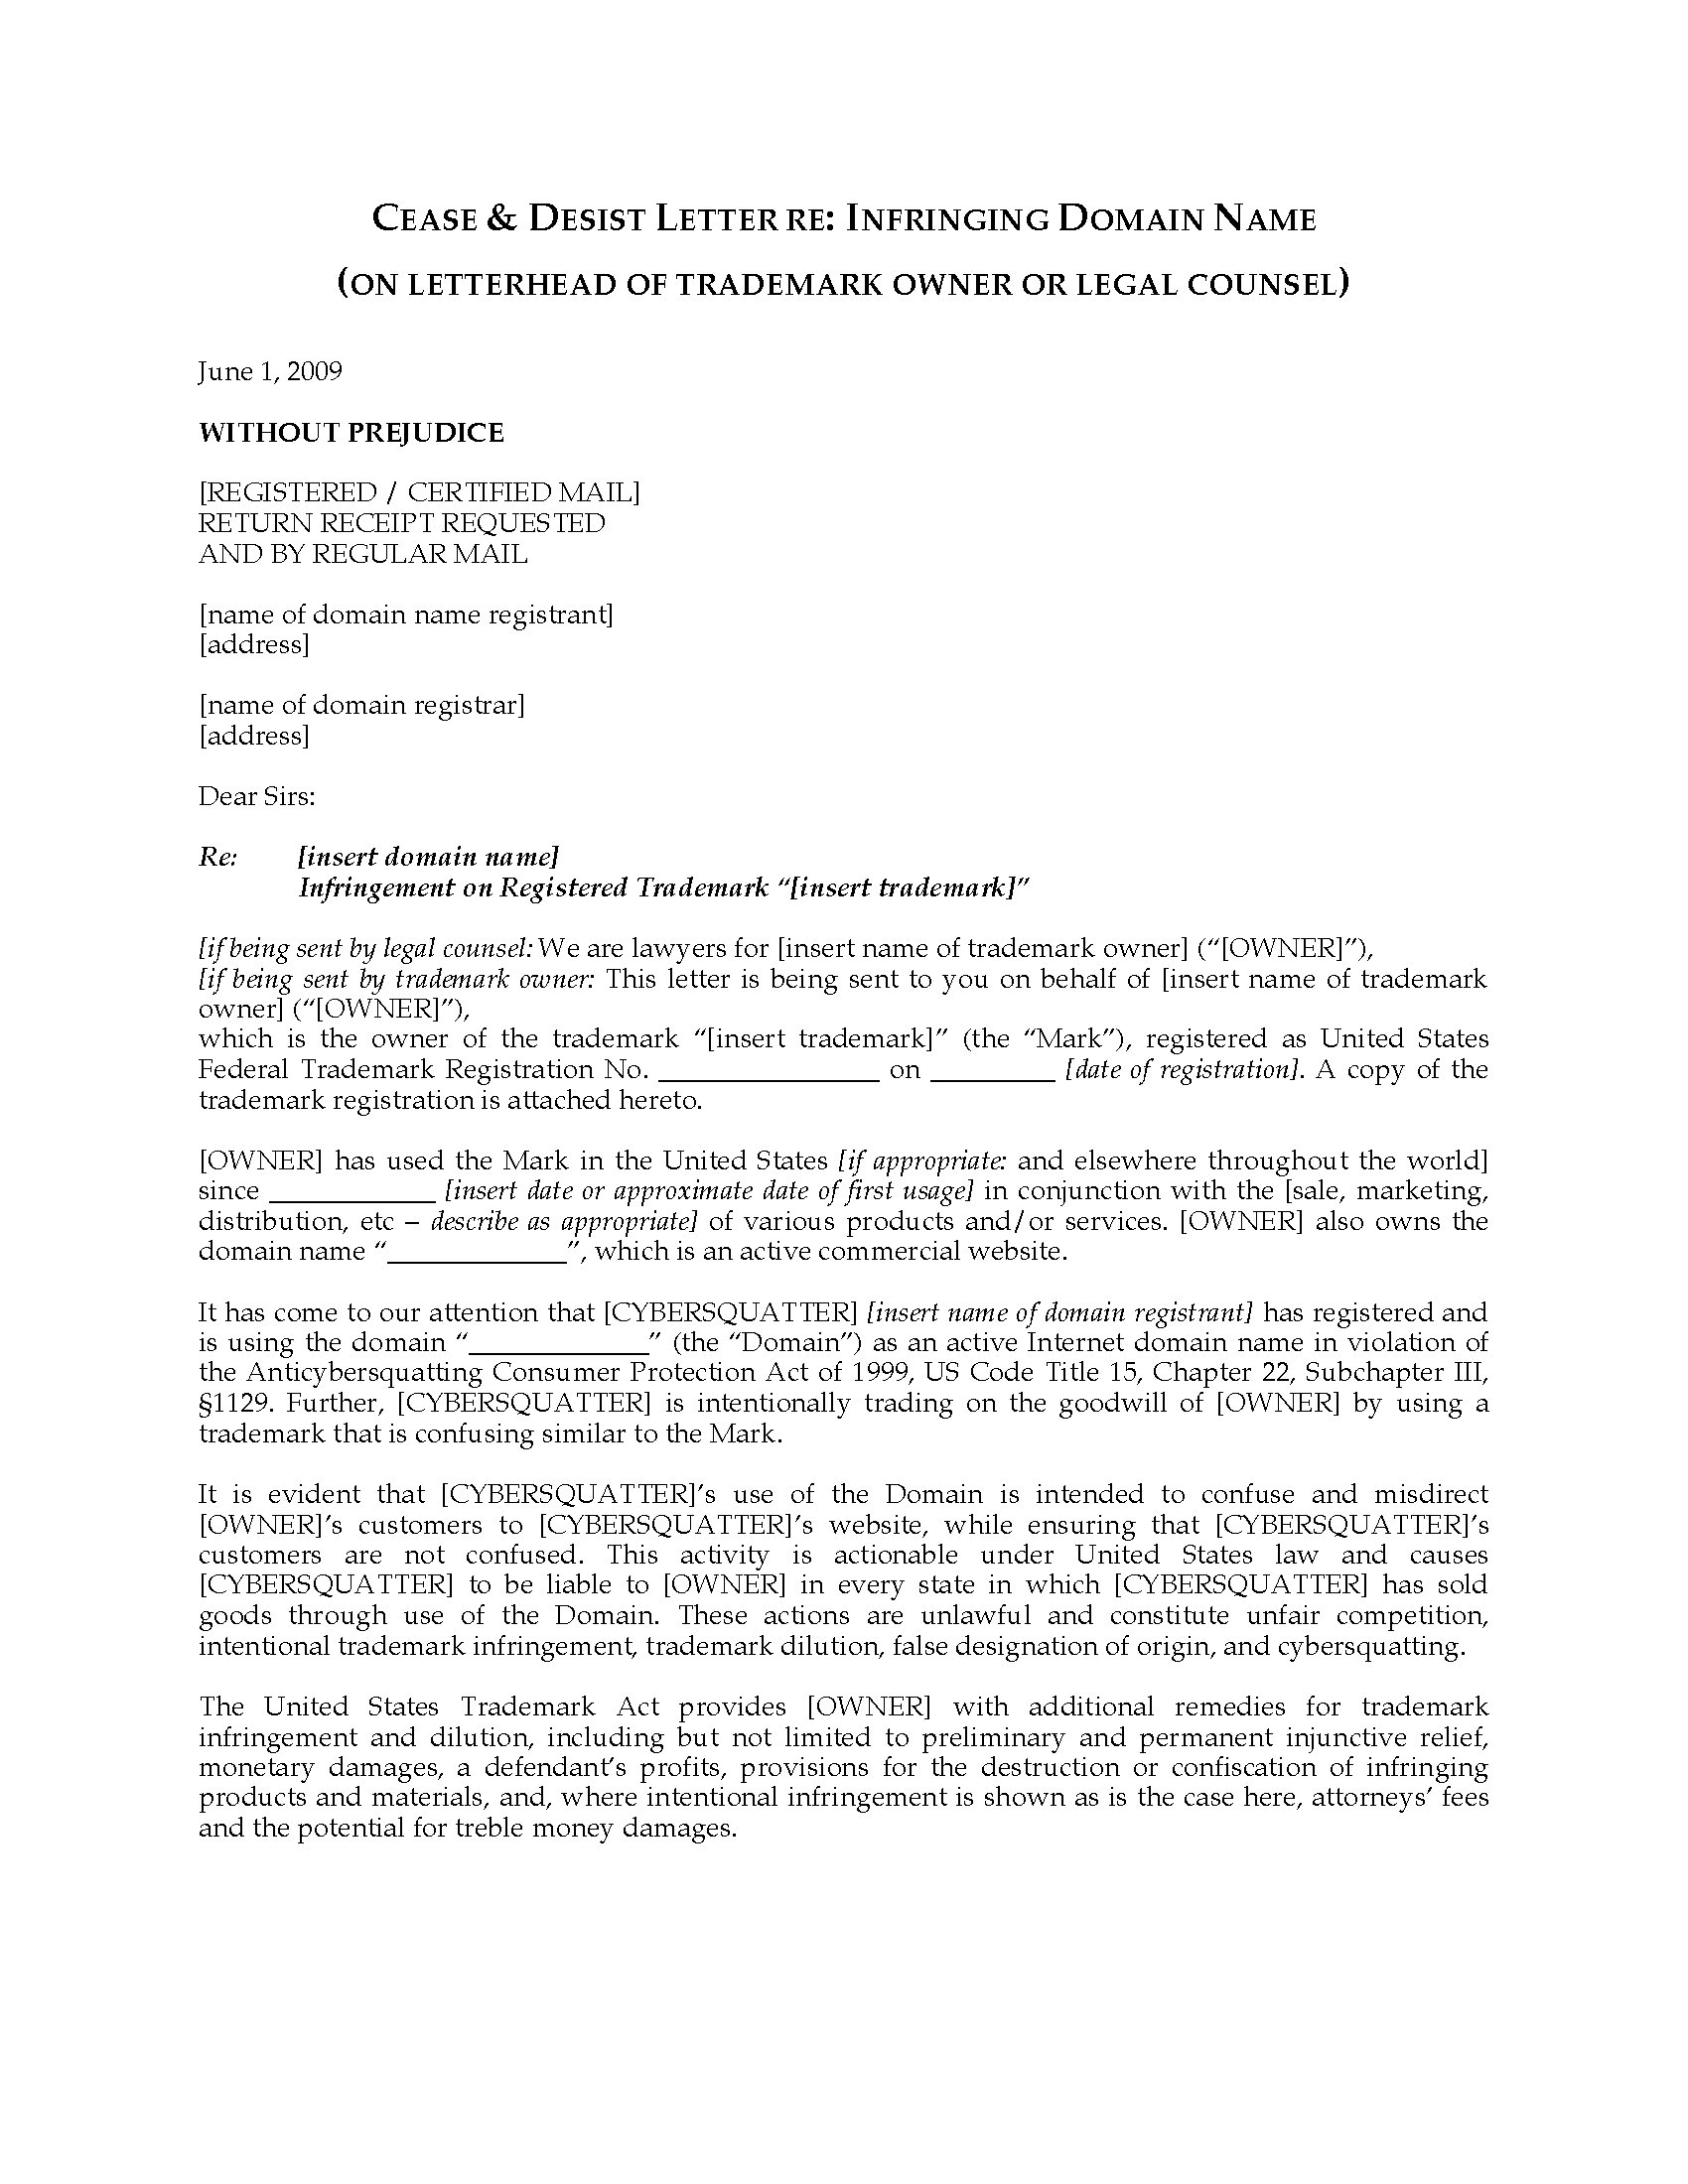 Trademark Cease and Desist Letter Template - 20 Best Trademark Infringement Letter Template Uk Pics